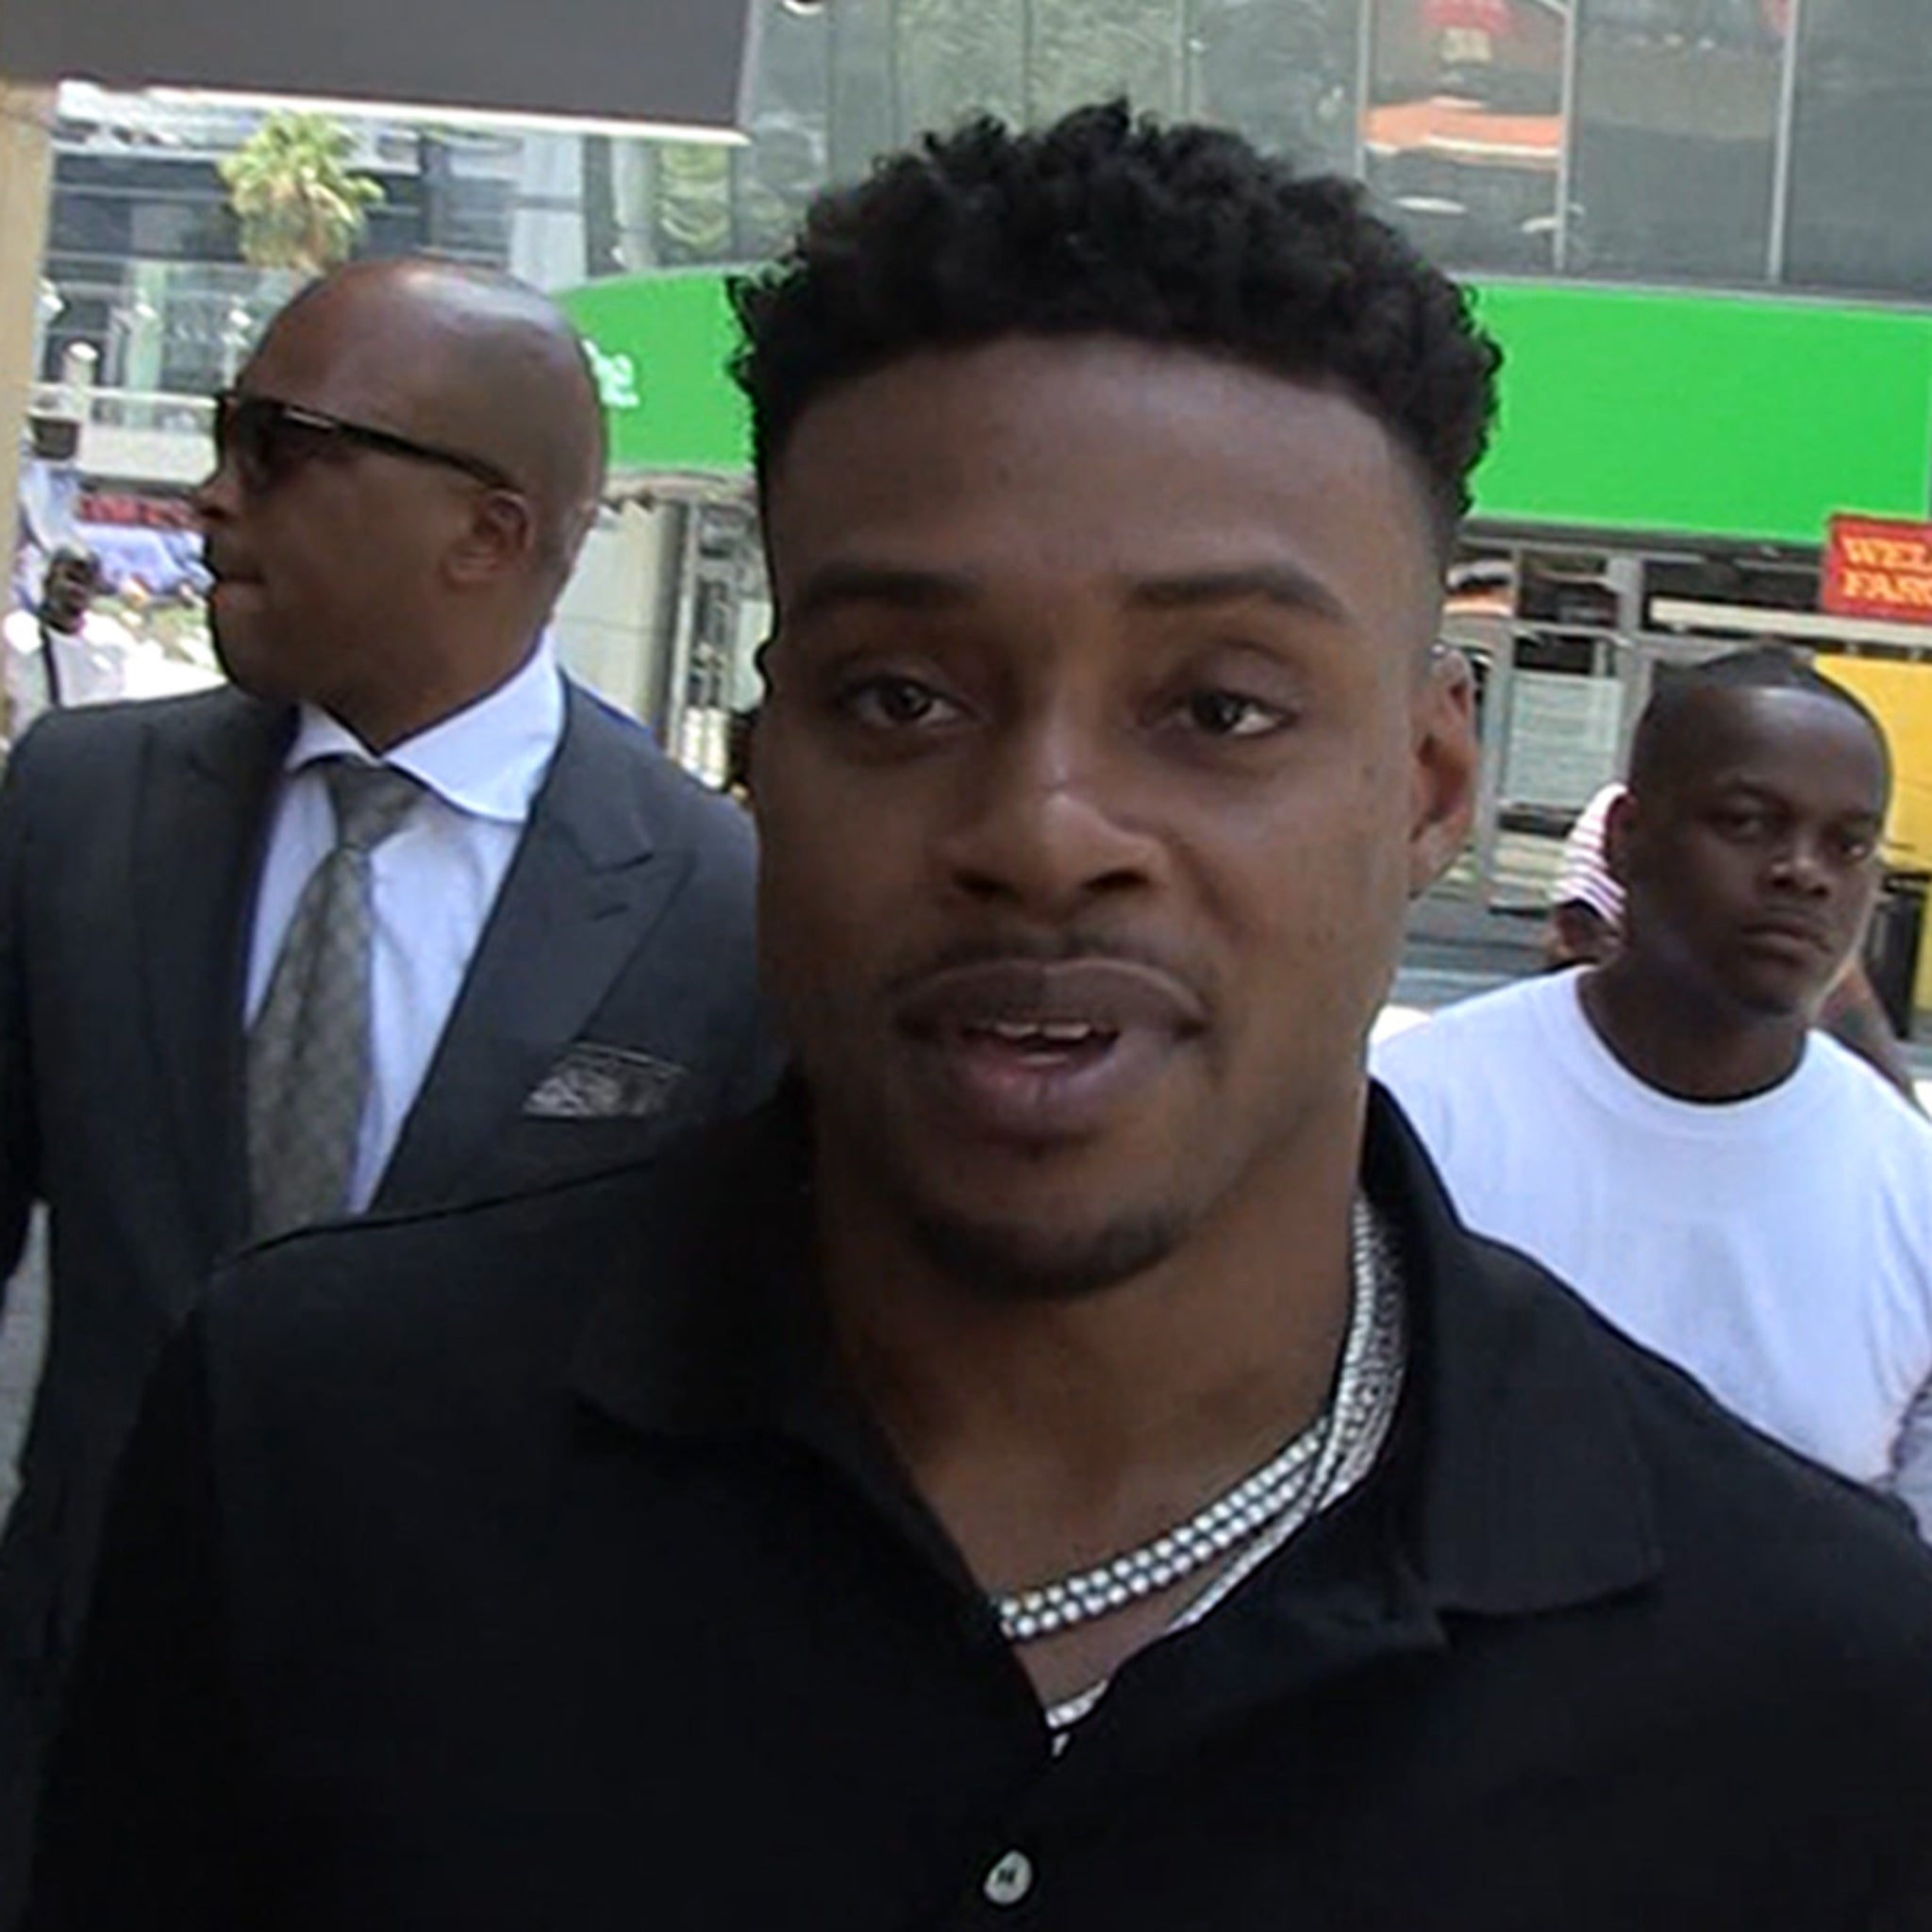 Errol Spence Says He Wants Manny Pacquiao After He Beats Shawn Porter